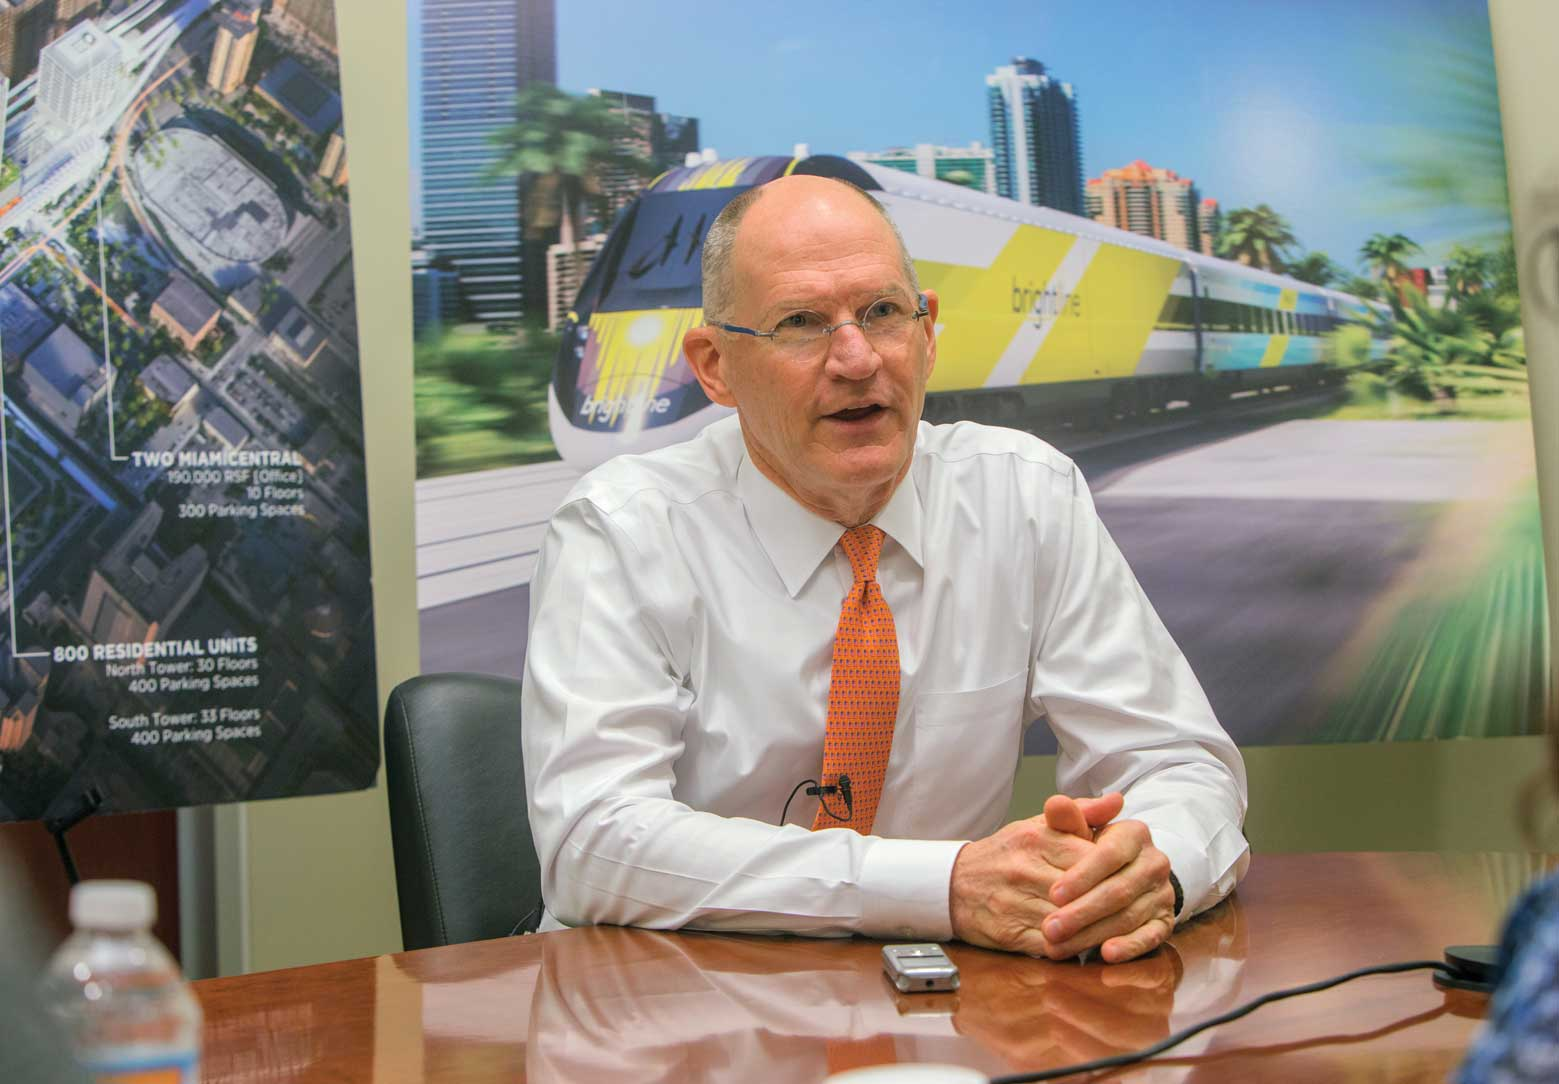 Public-private partnerships for transit get rail developer's input